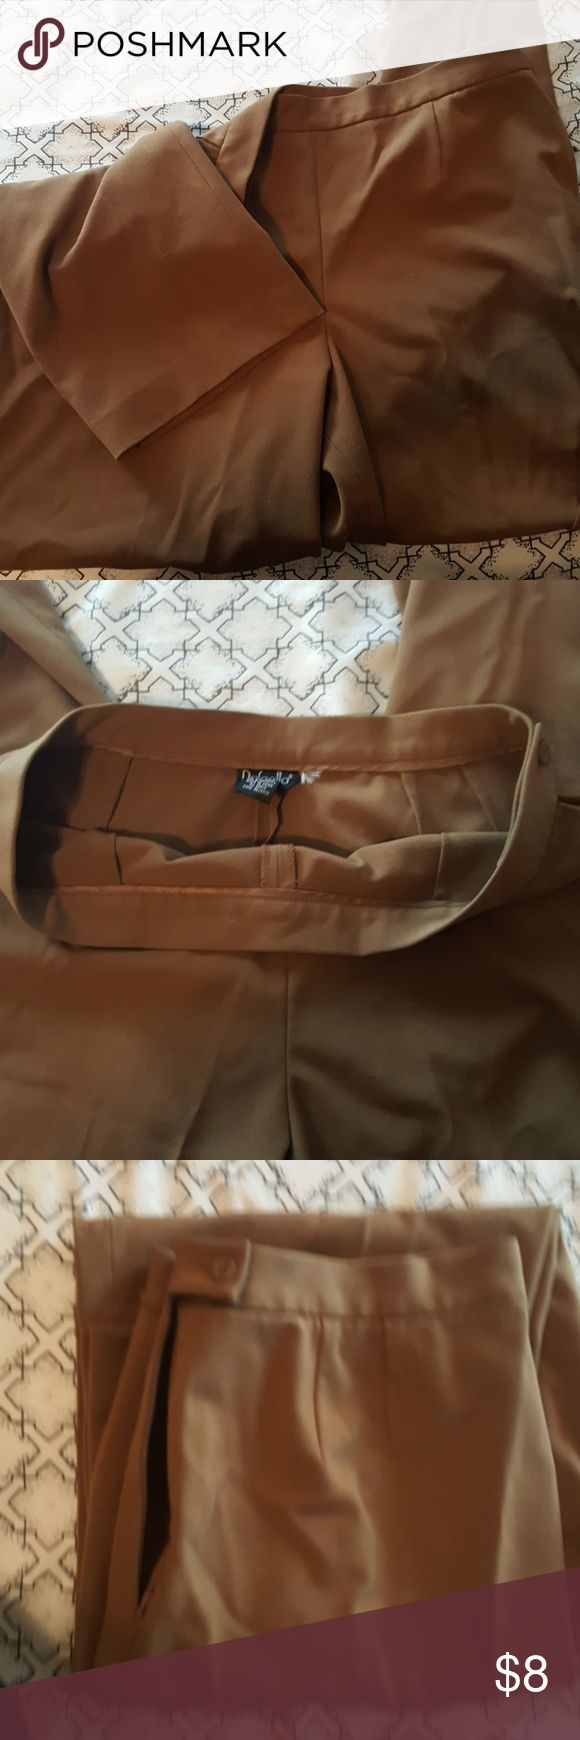 Slacks Camel color, polyester rayon blend, average length, great condition! Rafaella Pants Trousers